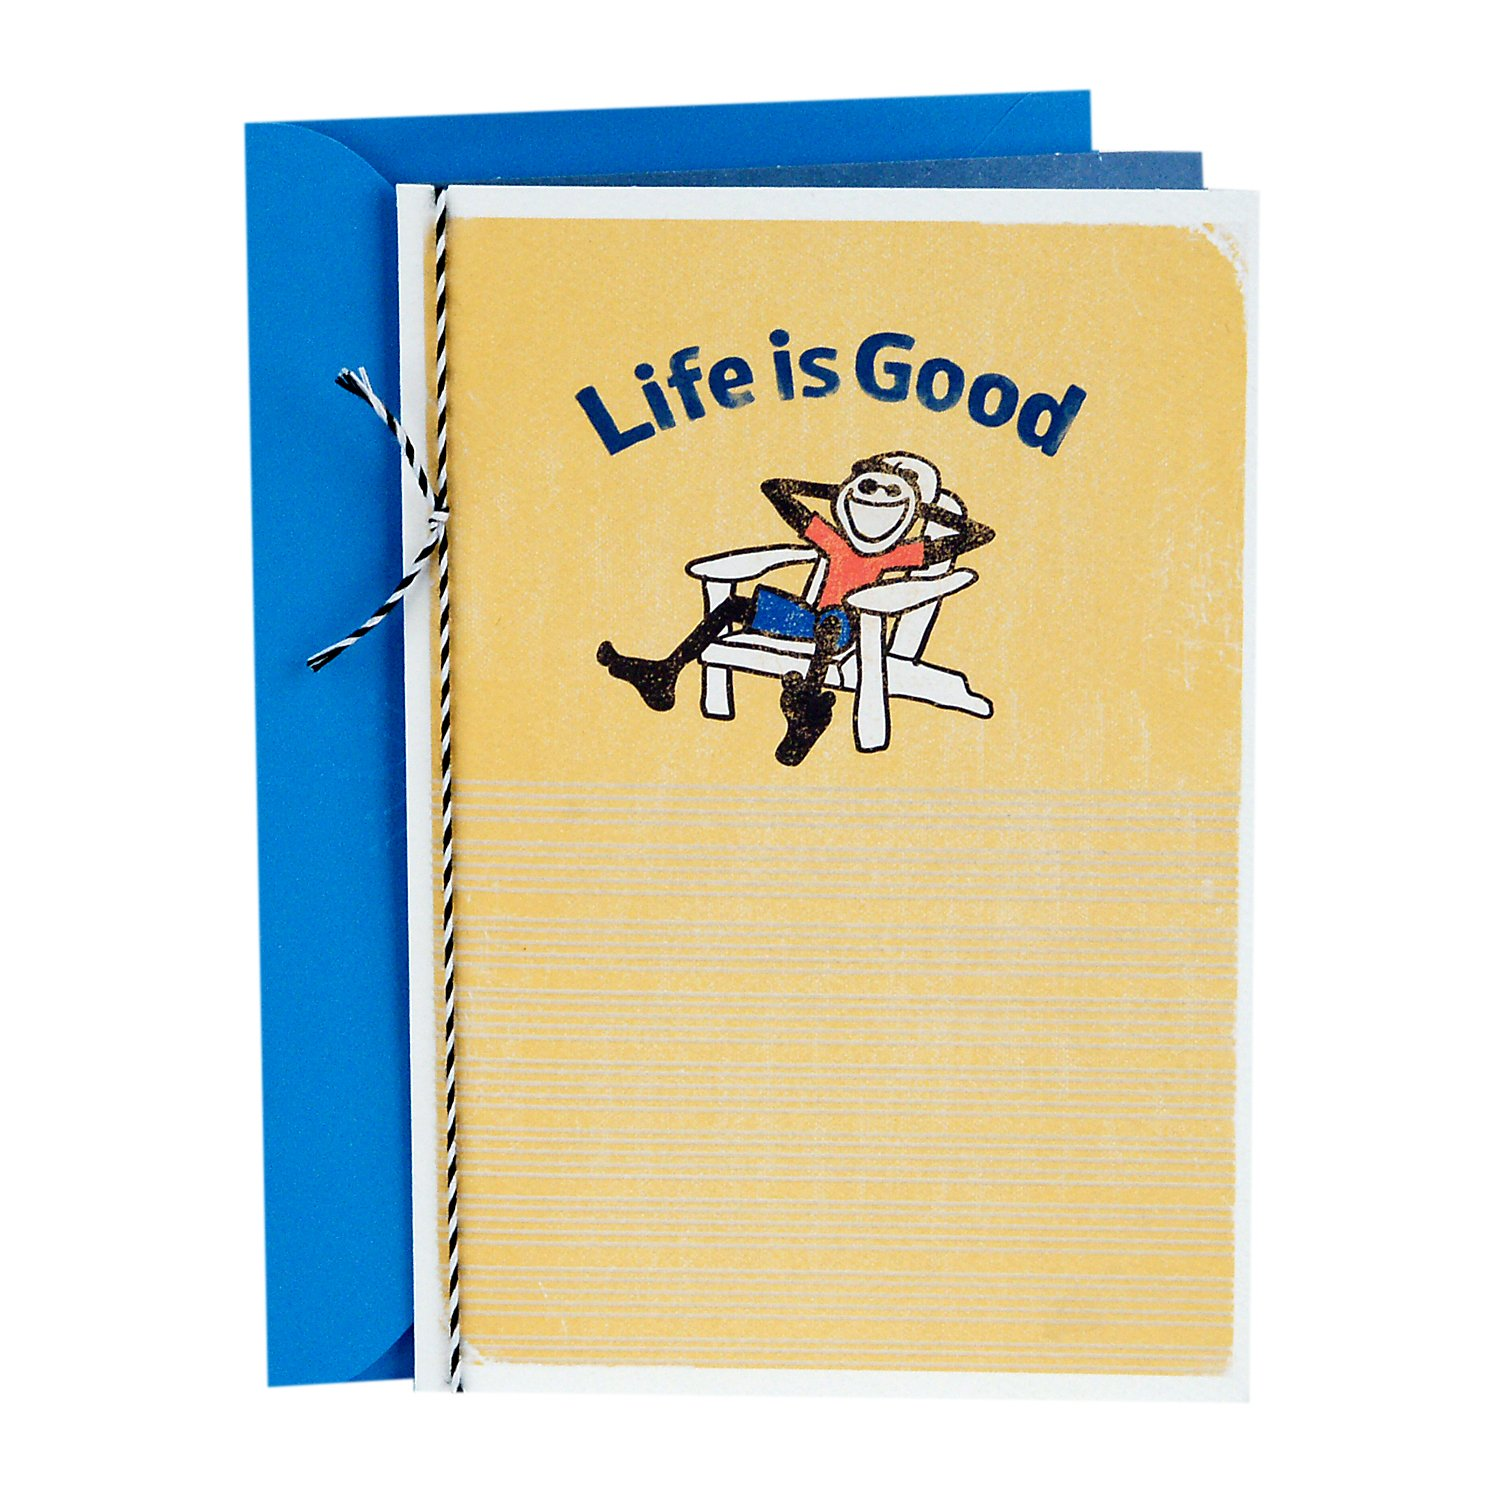 1db0c8f4a Amazon.com : Hallmark Father's Day Greeting Card (Life is Good, Keep it  Simple) : Office Products